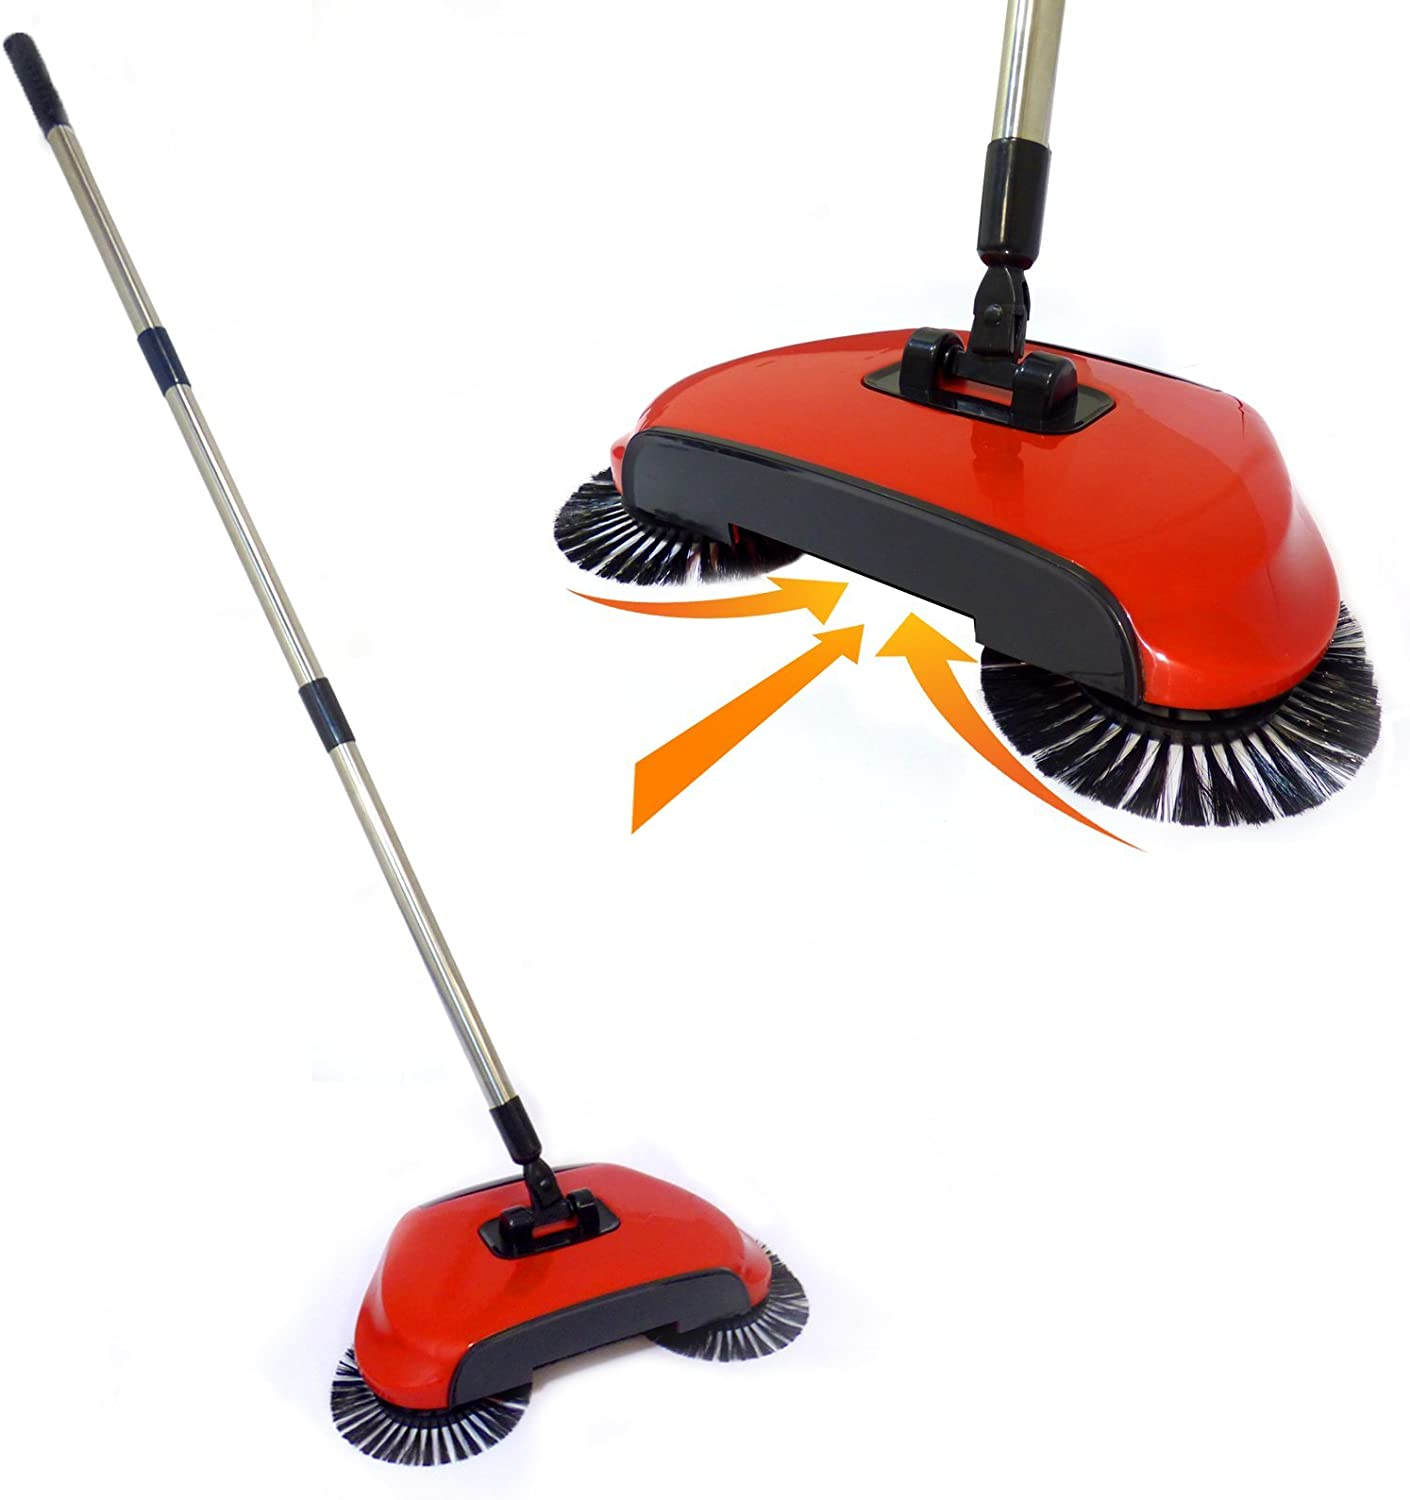 Automatic Spin Sweeper 3 in 1 Floor Sweeping Brush Broom, Duster & Dustpan Pukkr